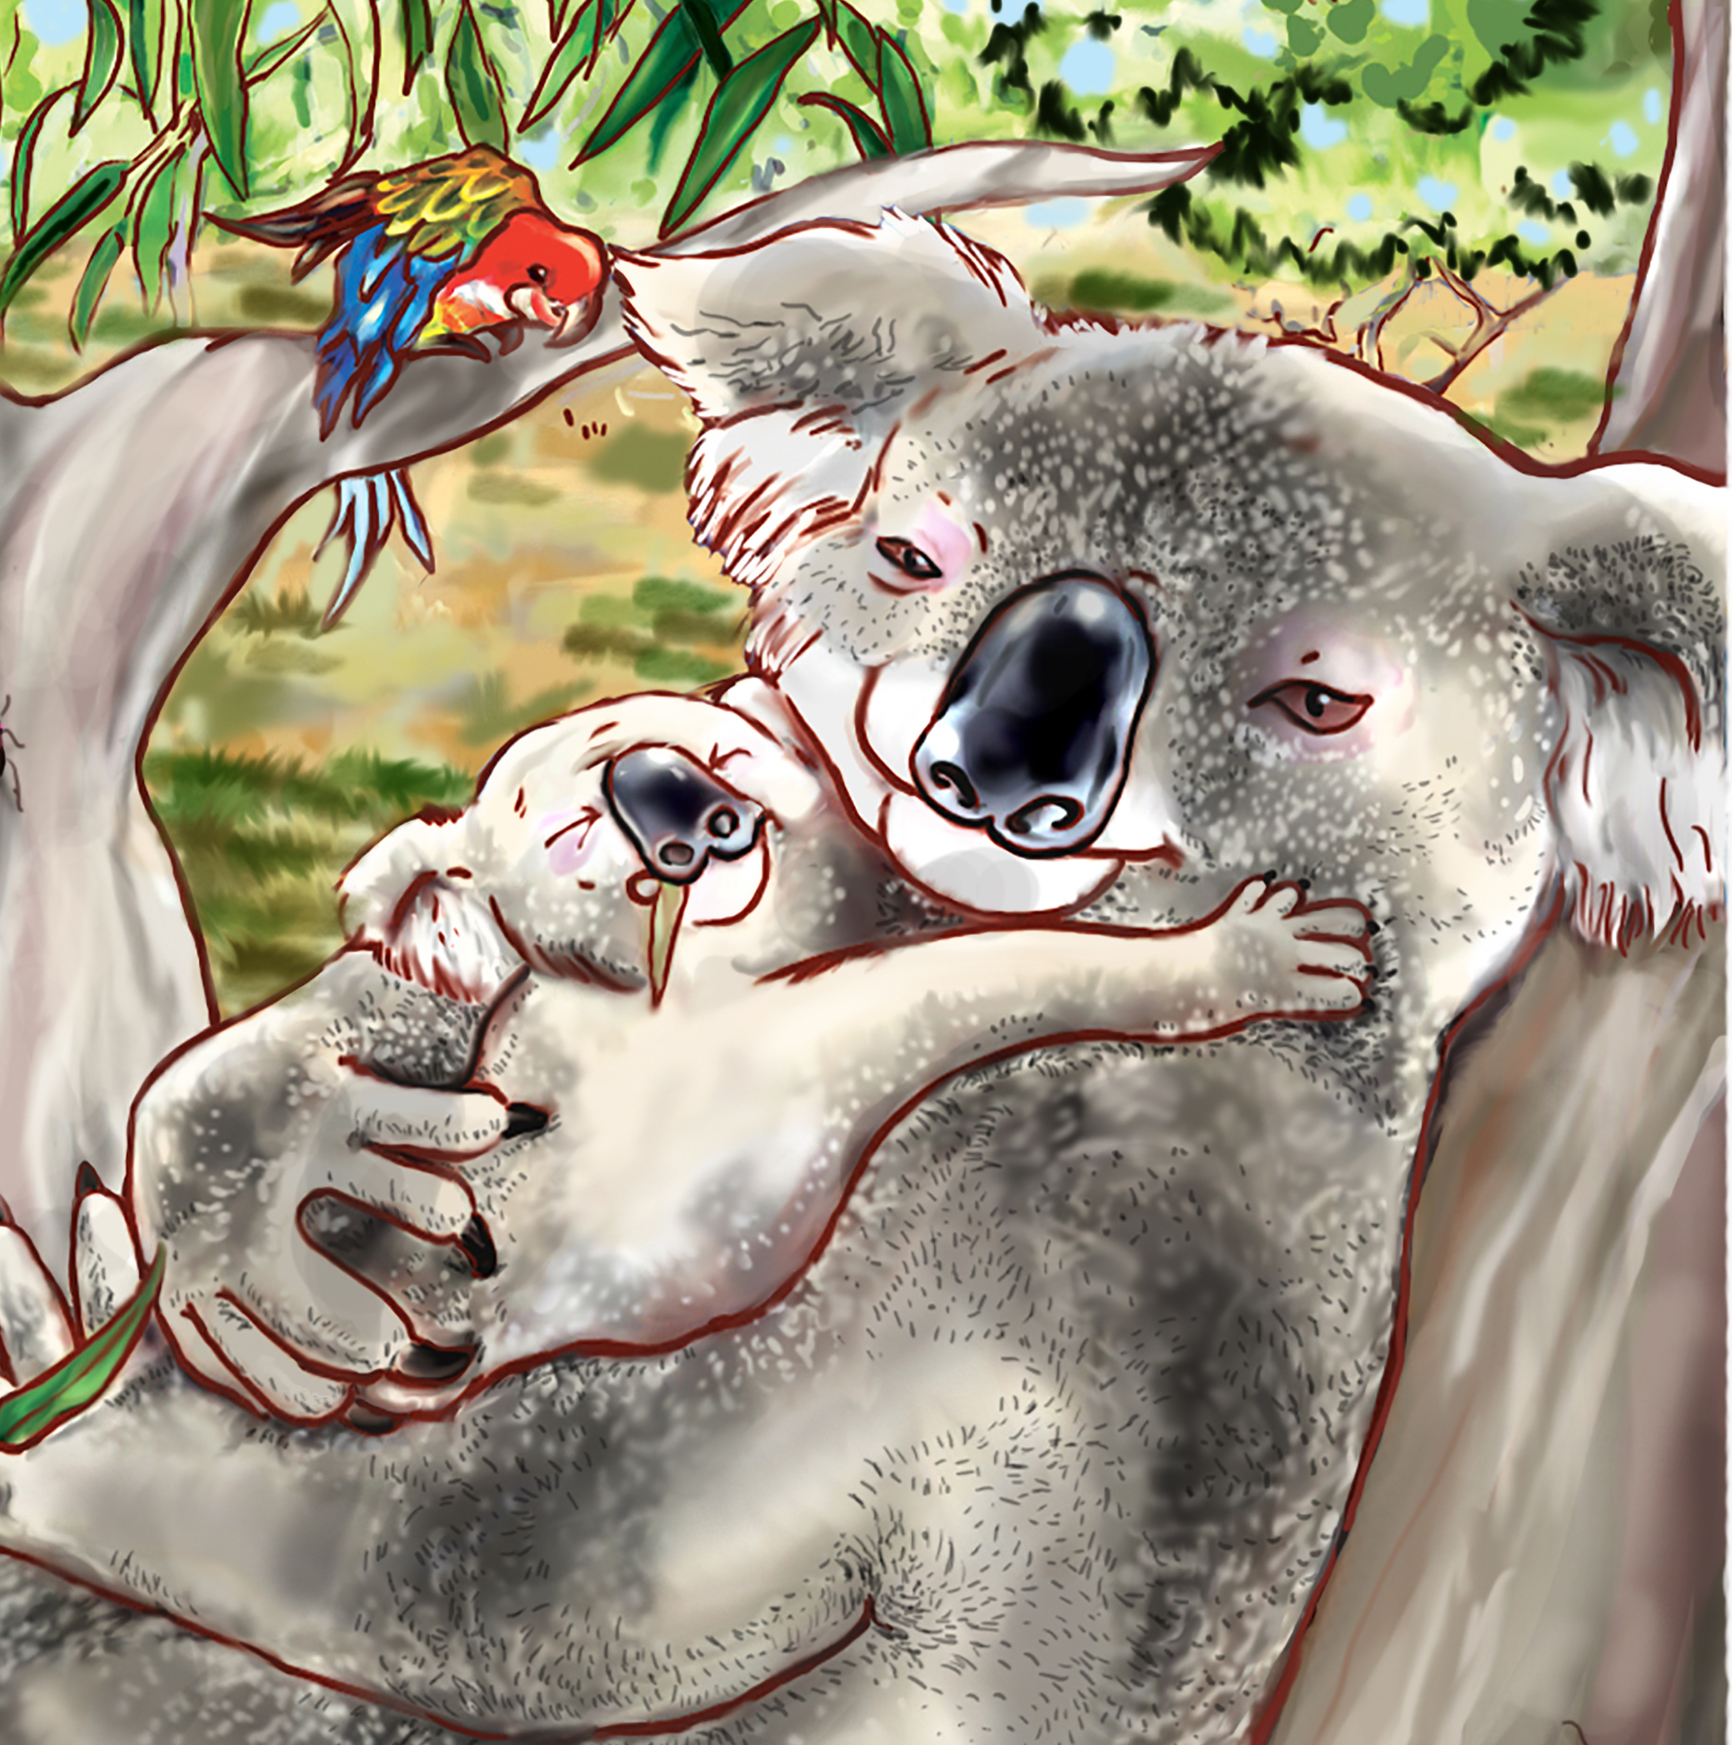 detail, Kobi Borrows a Pouch, ©Margot Finke illustrated by Agy Wilson learn about the process